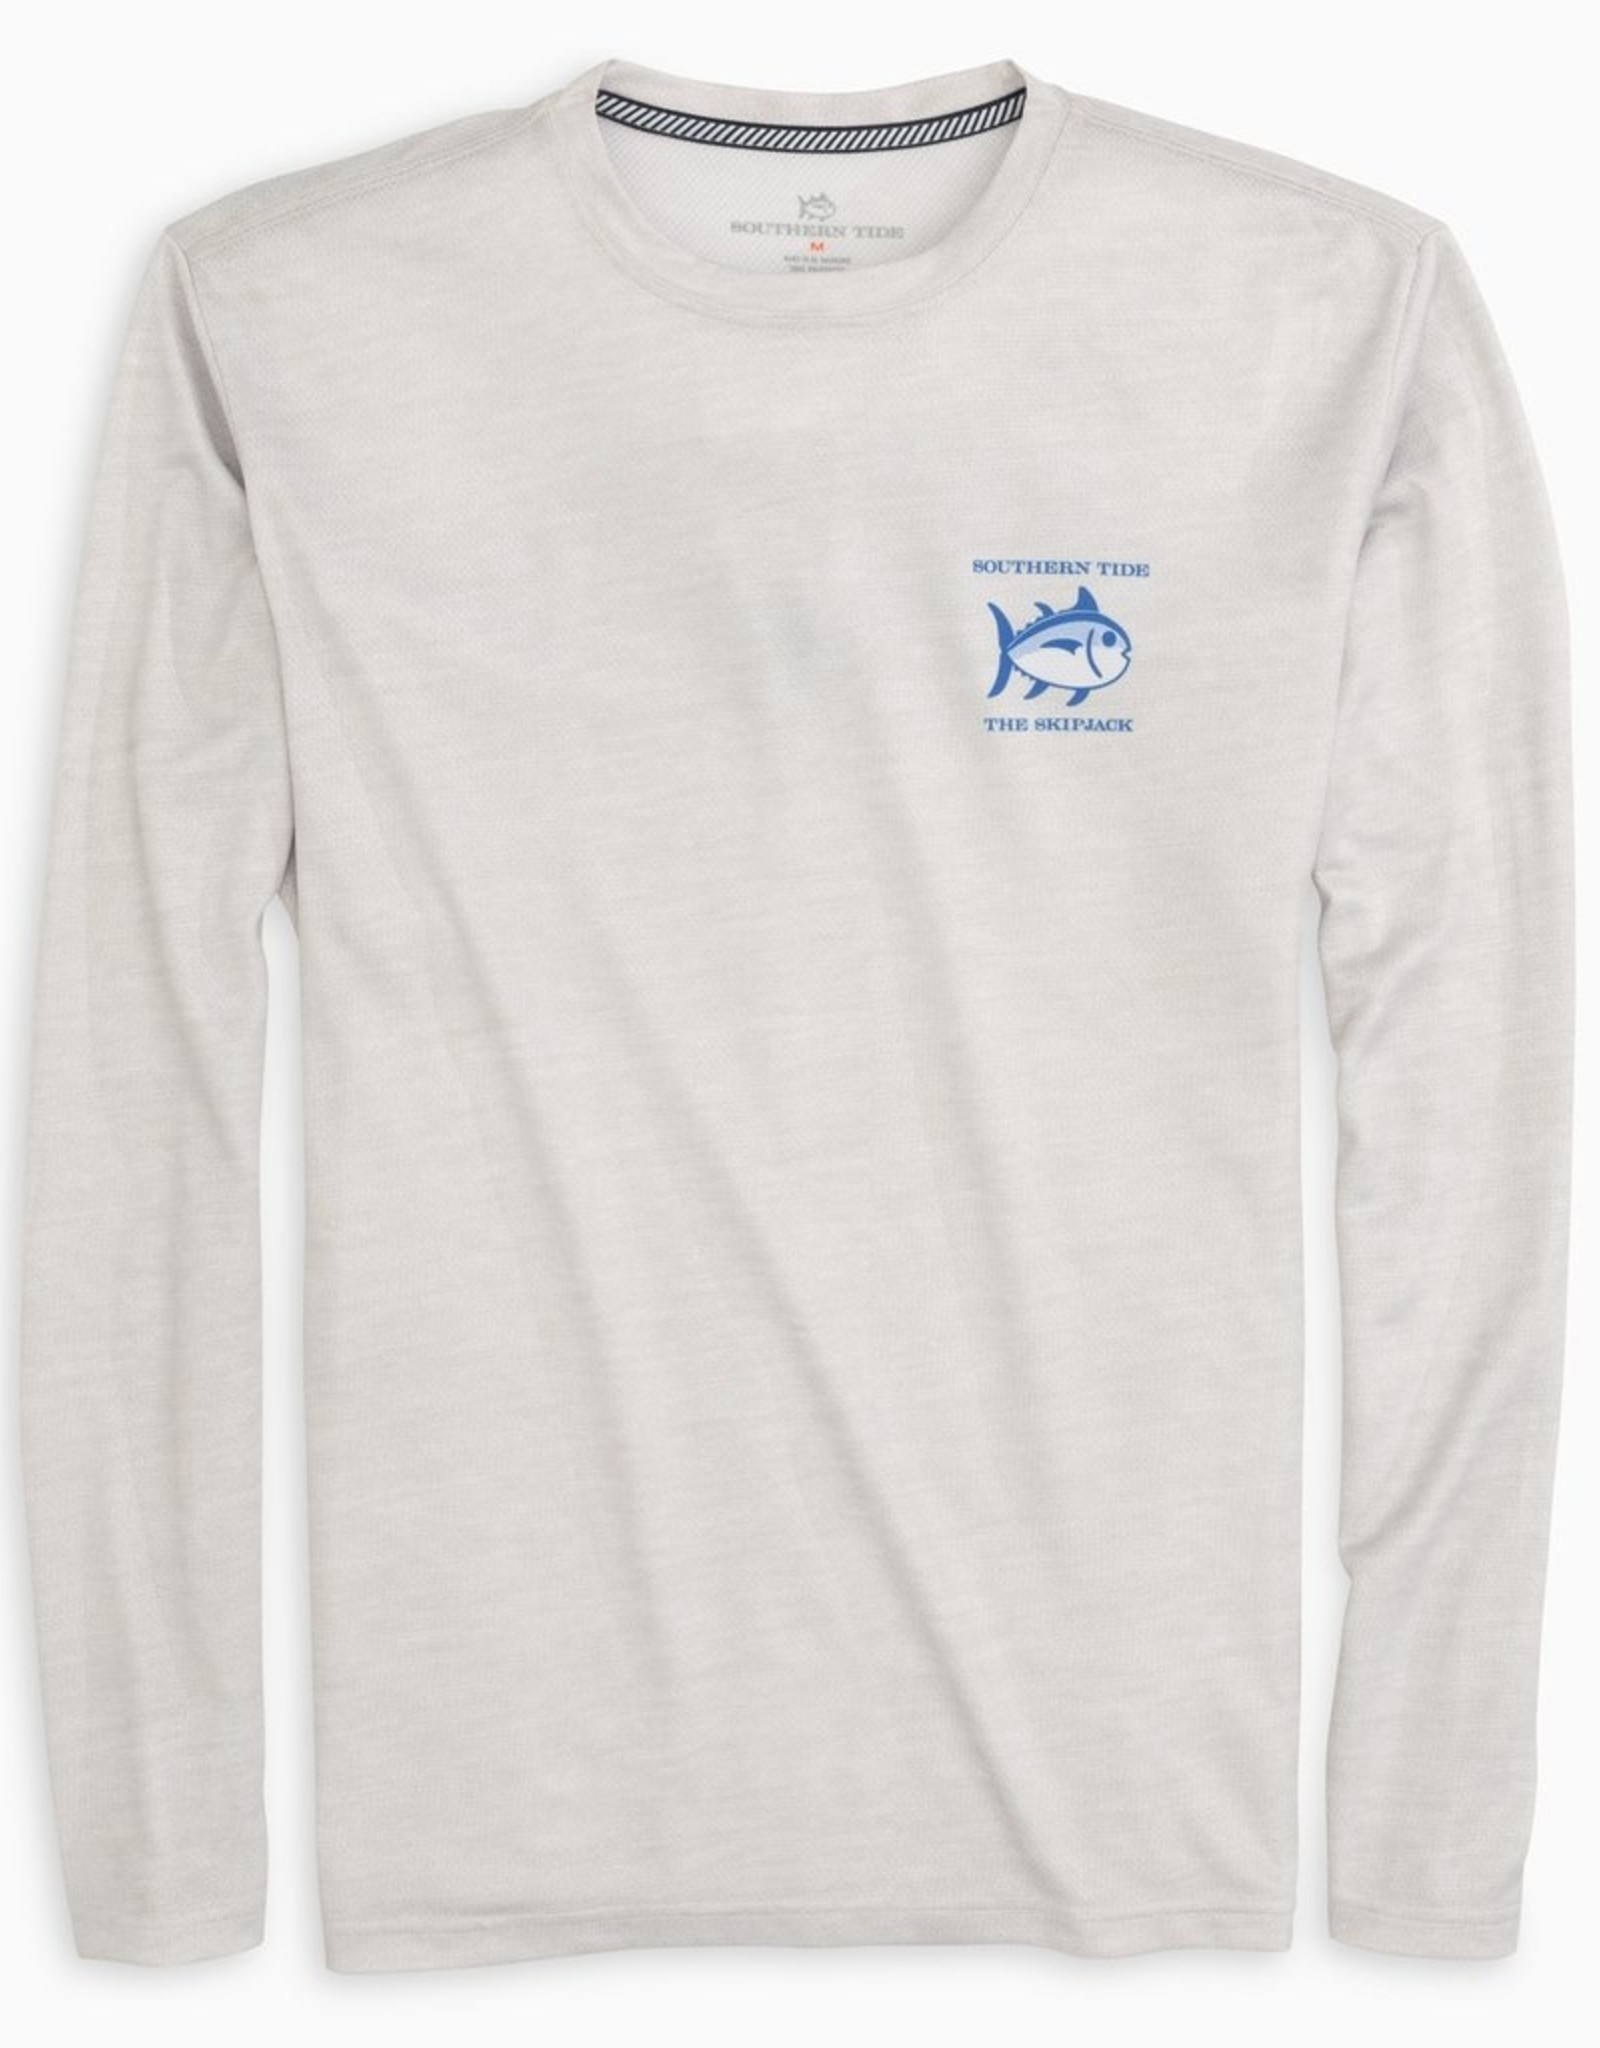 Southern Tide Under The Sea Tee Performance Shirt